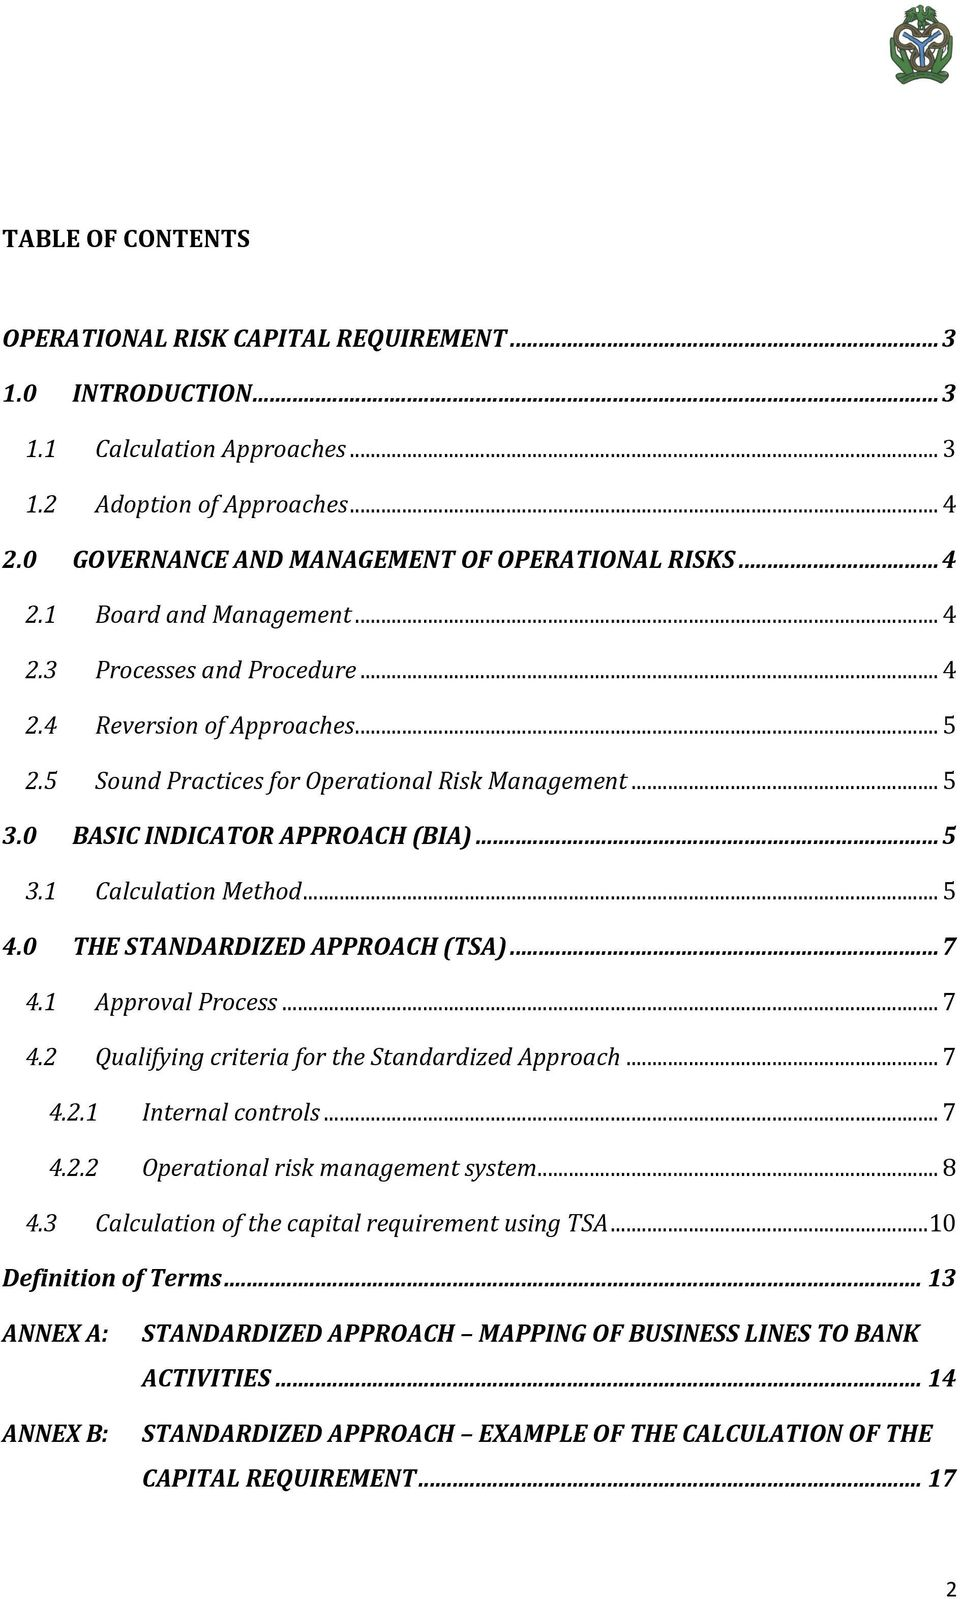 .. 5 4.0 THE STANDARDIZED APPROACH (TSA)... 7 4.1 Approval Process... 7 4.2 Qualifying criteria for the Standardized Approach... 7 4.2.1 Internal controls... 7 4.2.2 Operational risk management system.